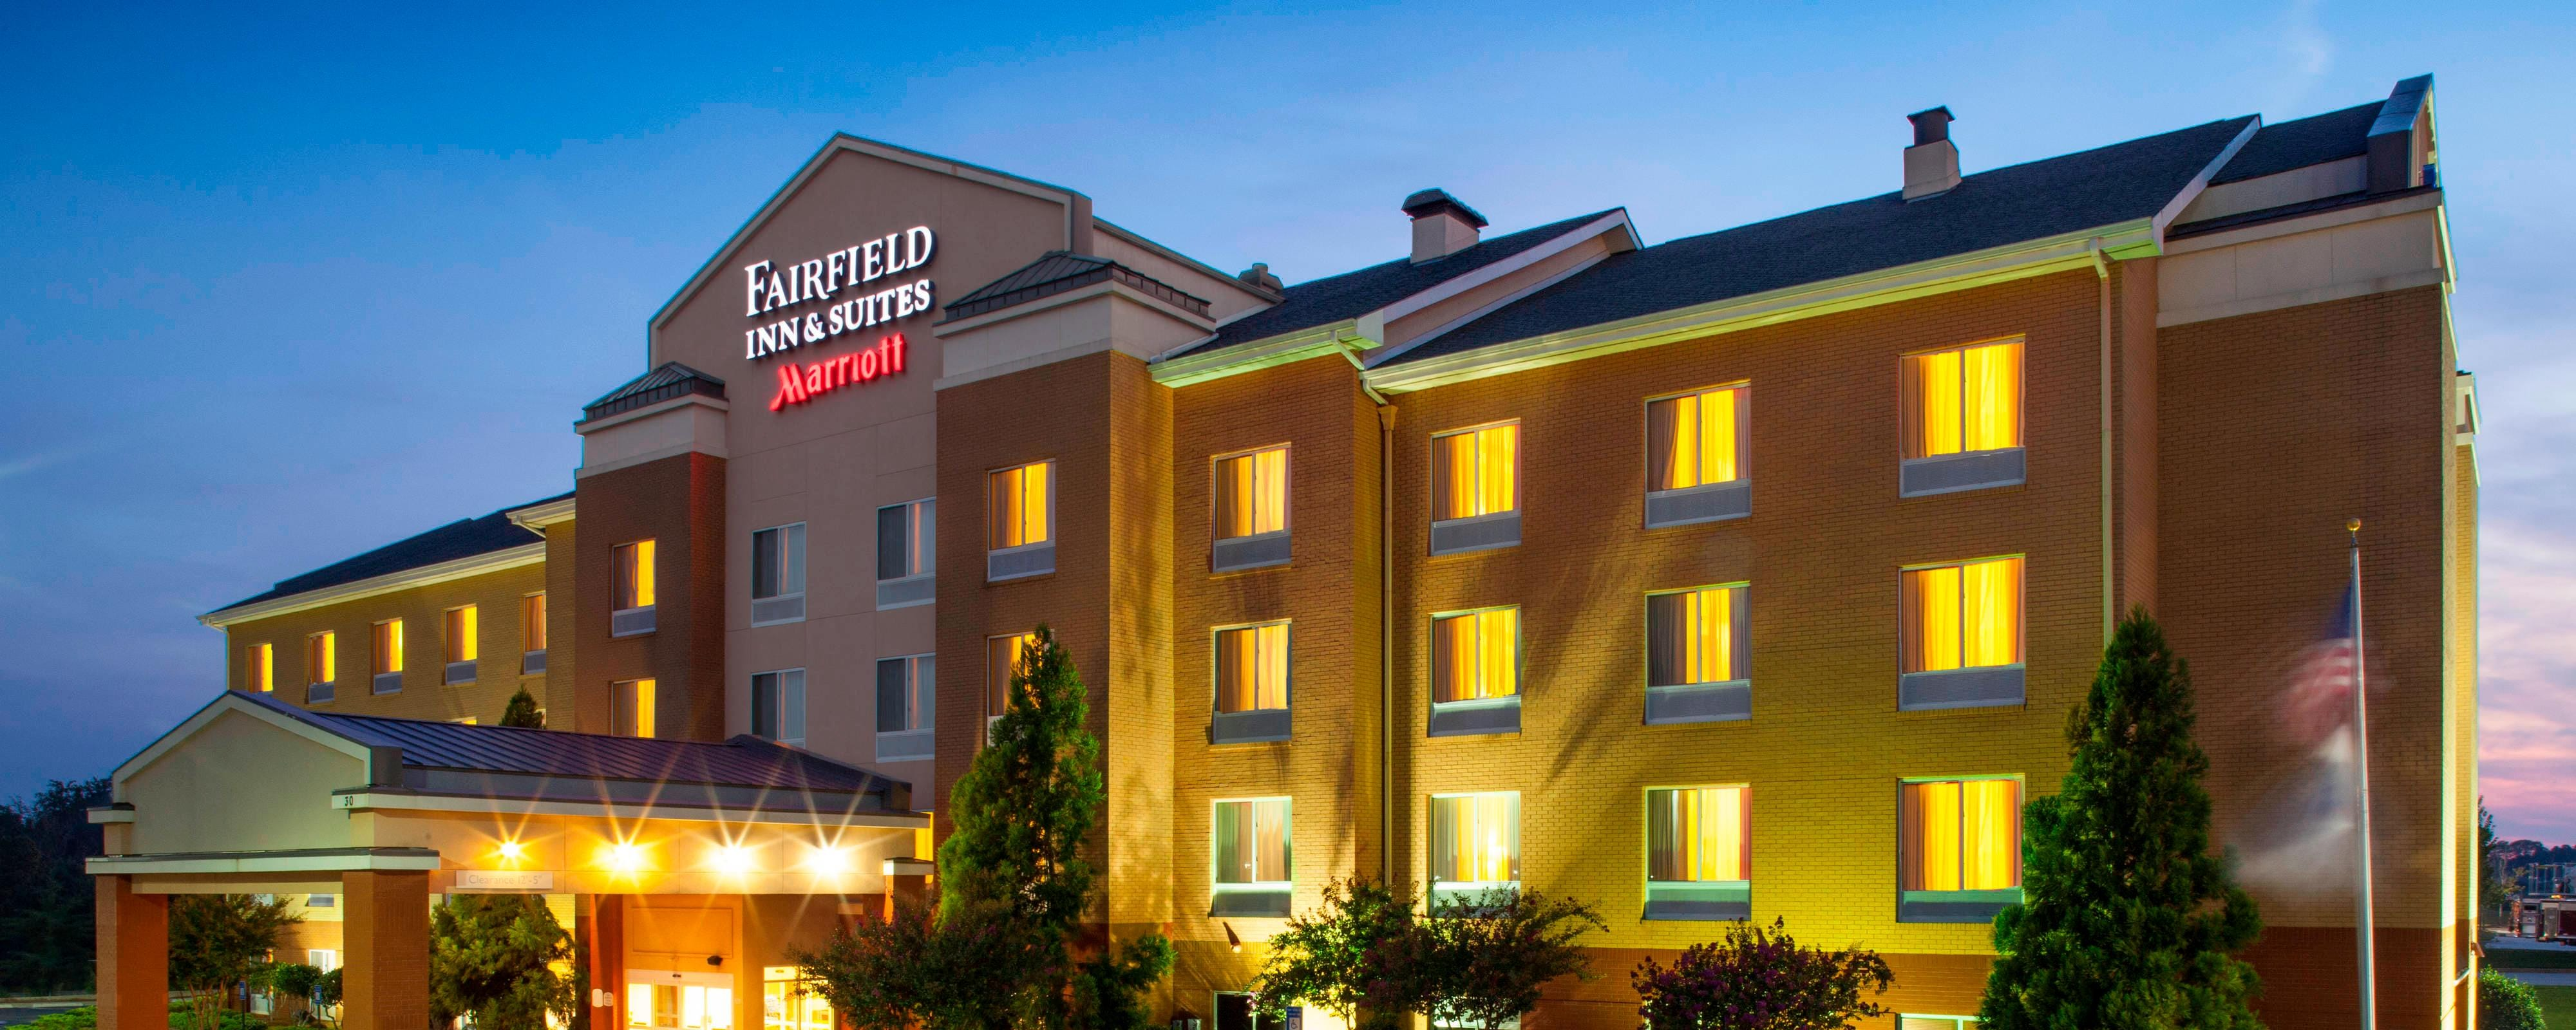 Fairfield Inn & Suites Atlanta McDonough by Marriott: Beautiful ...